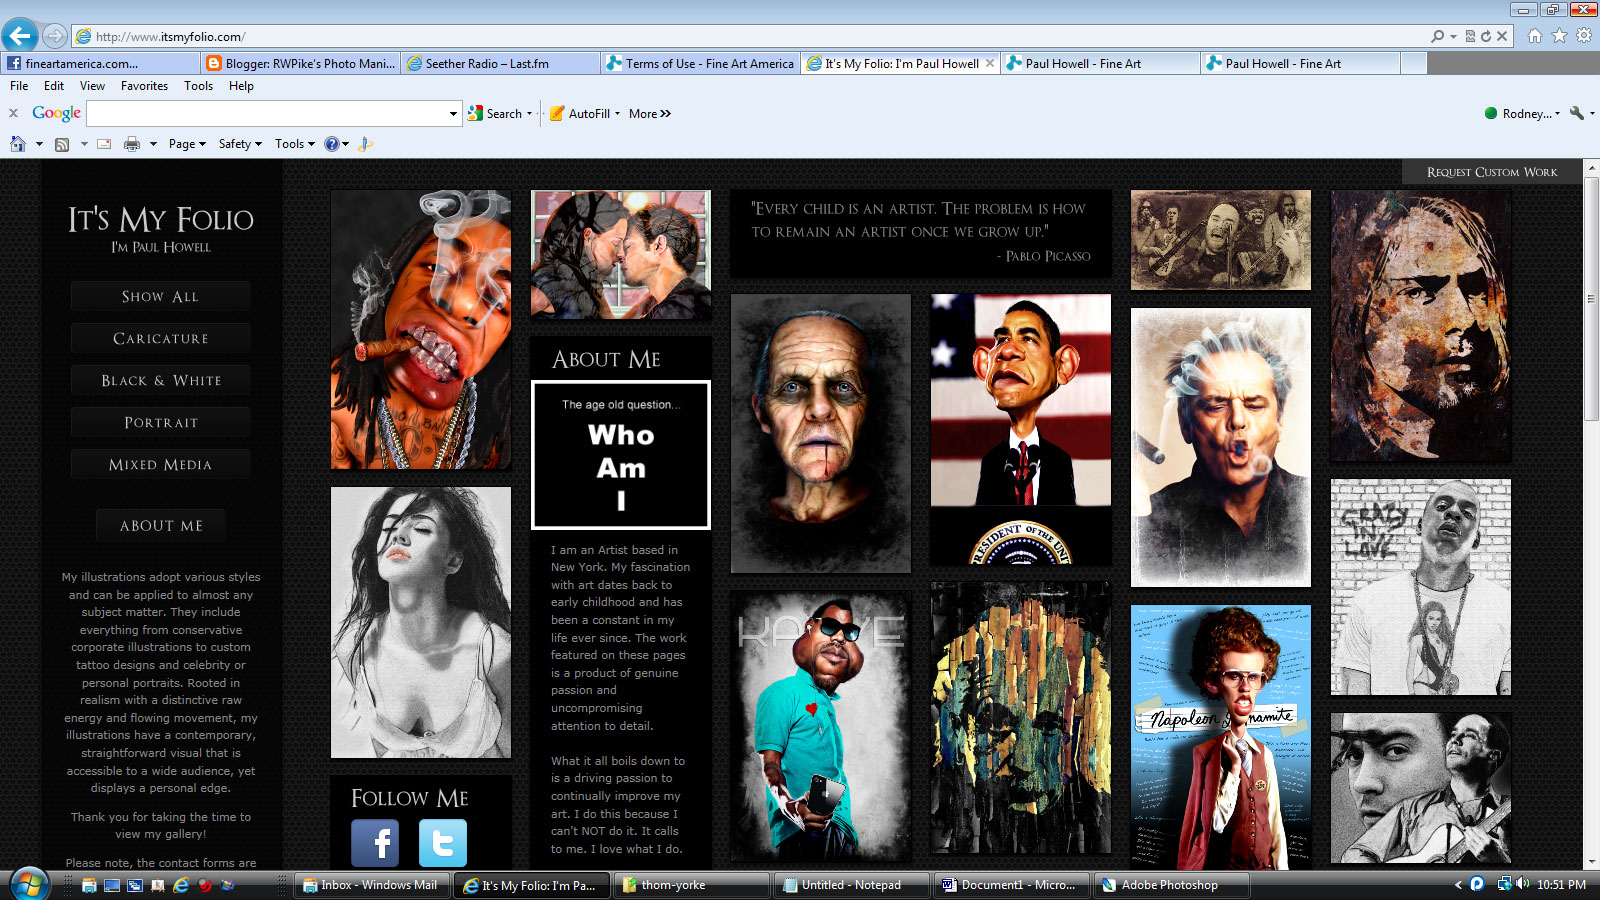 This is Paul Howell's personal web site